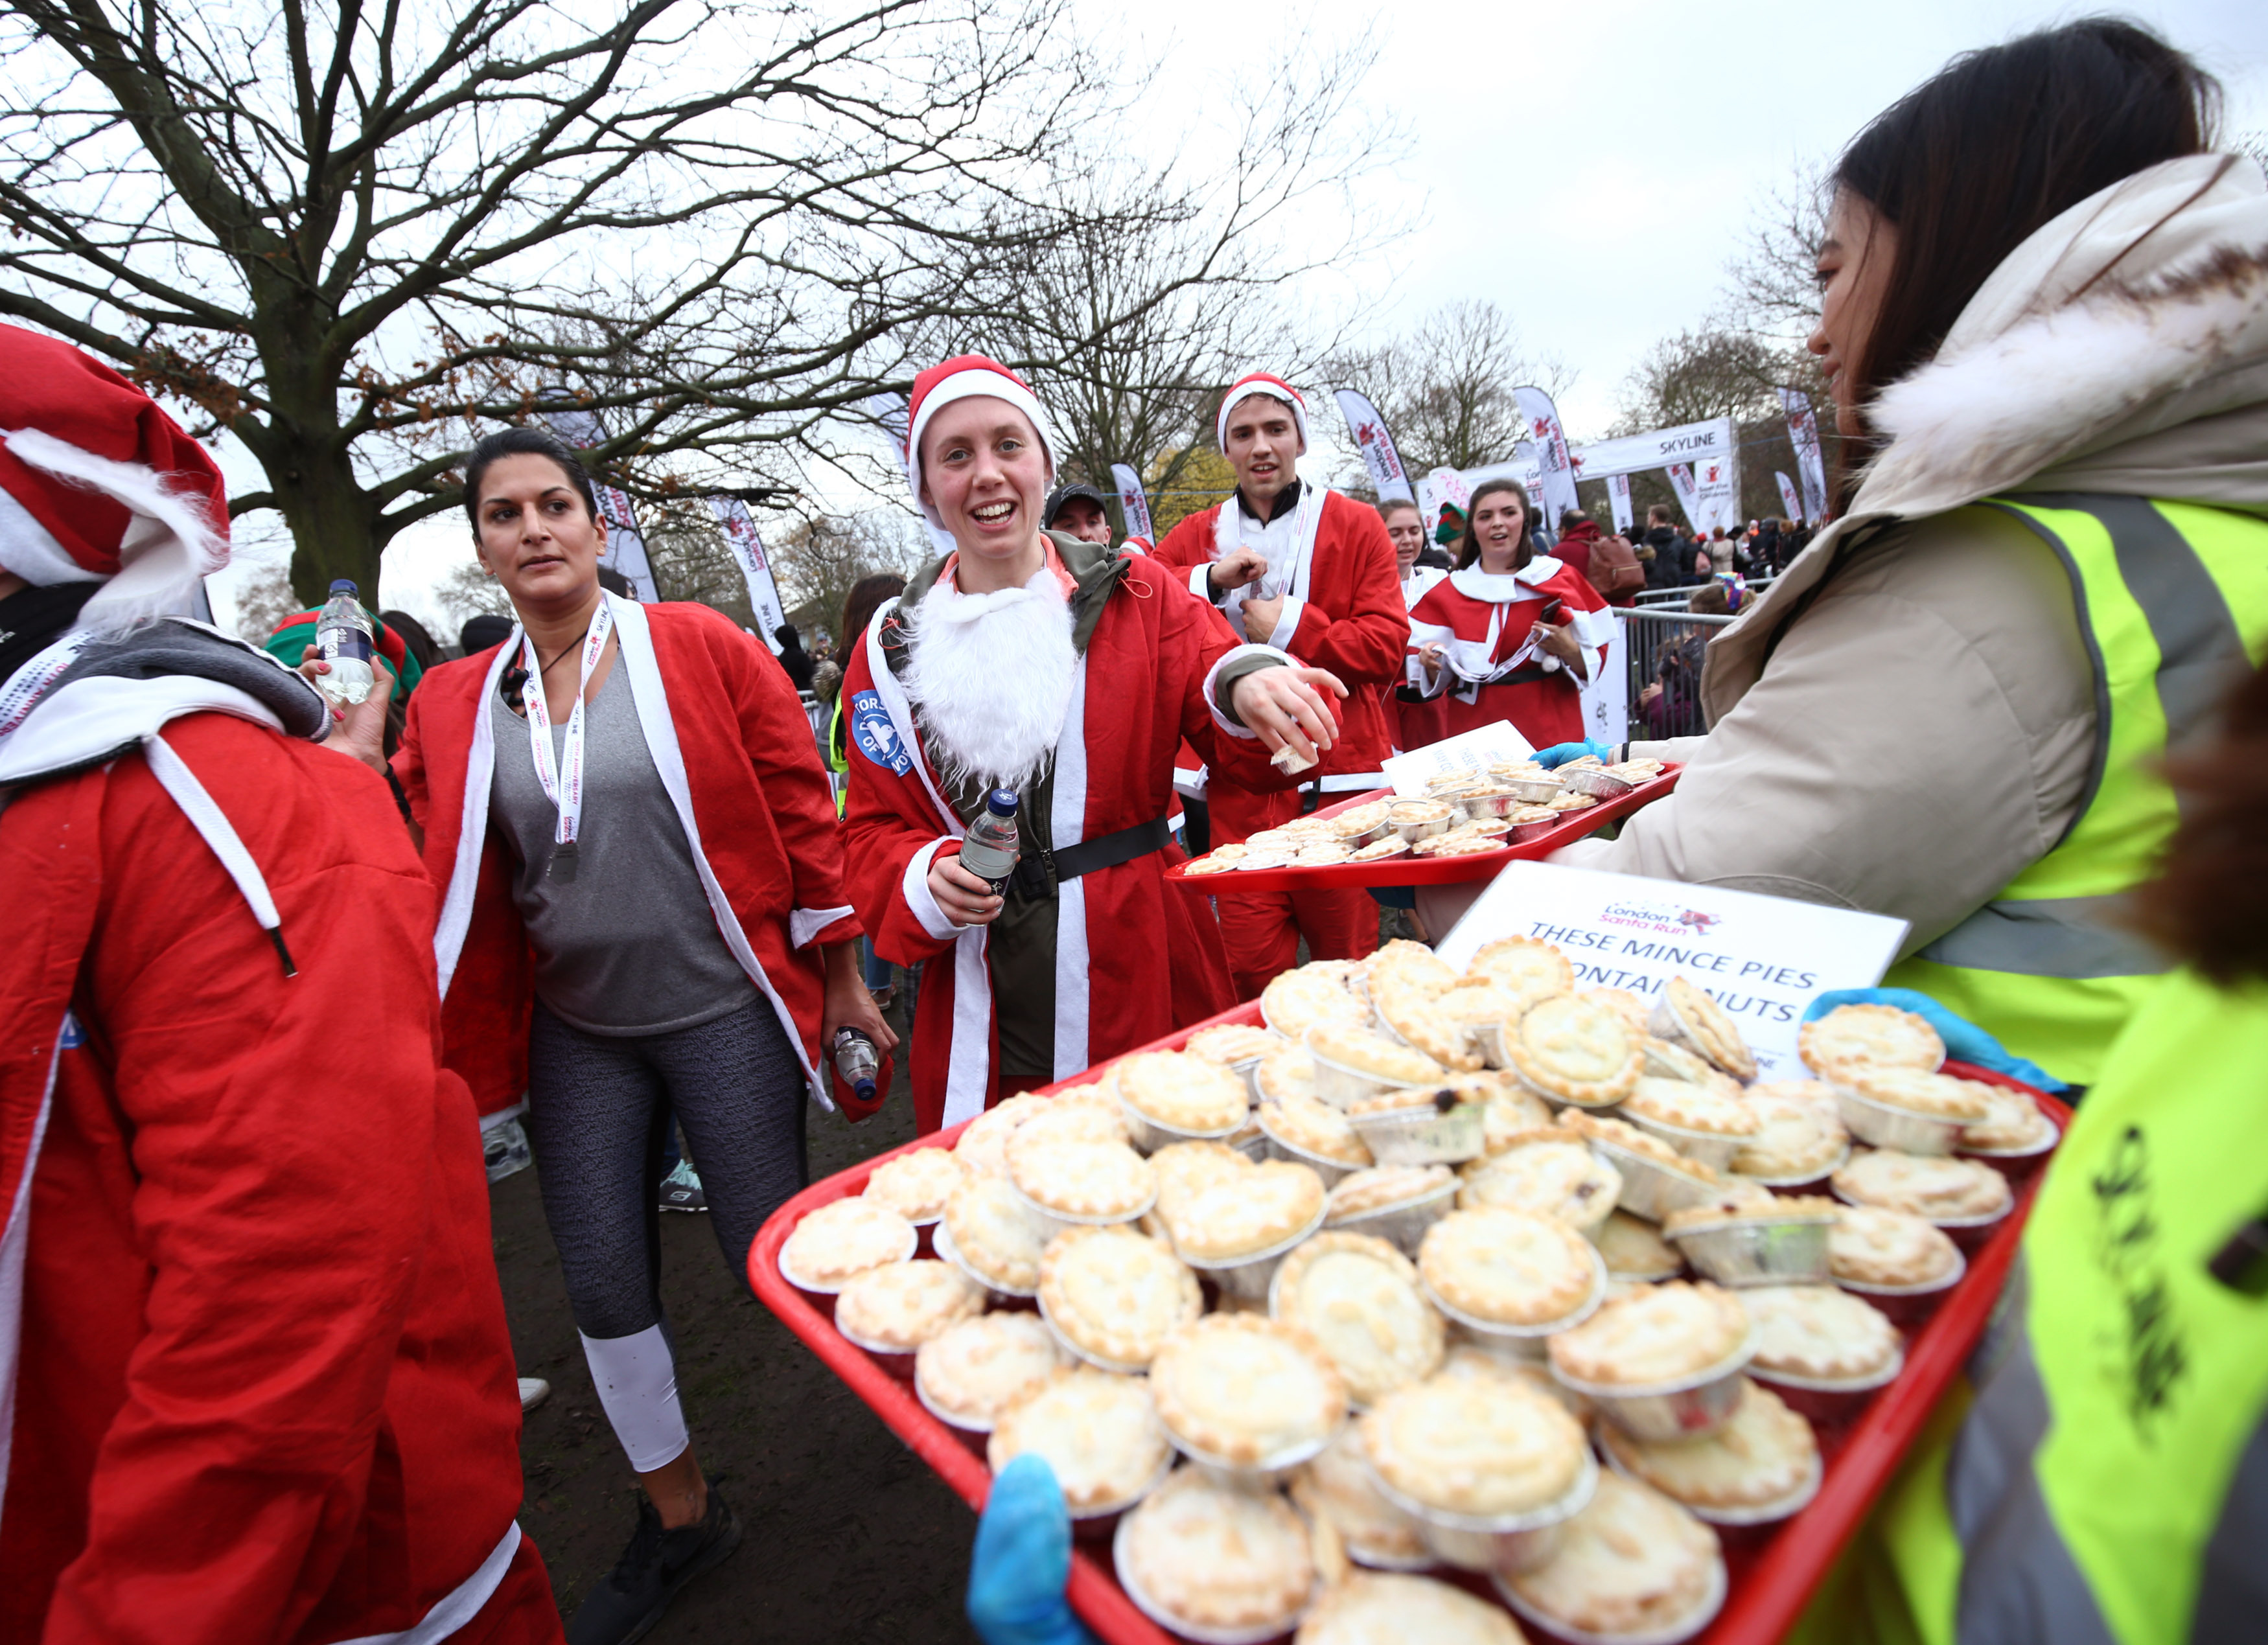 Participants take some mince pies after taking part in the London Santa Run, in Victoria Park, London